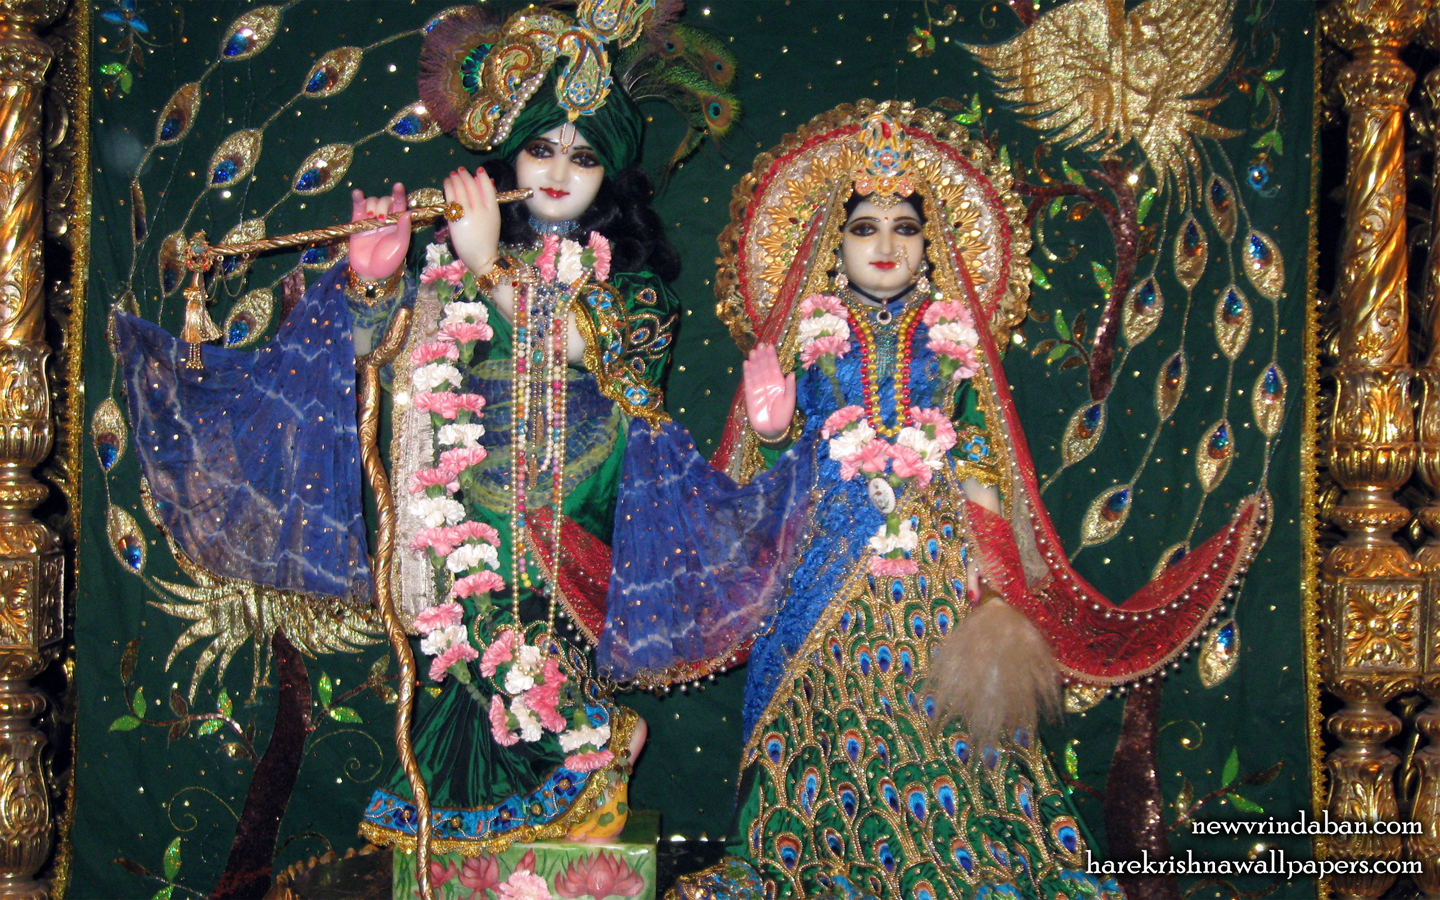 Sri Sri Radha Vrindavana Chandra Wallpaper (003) Size 1440x900 Download